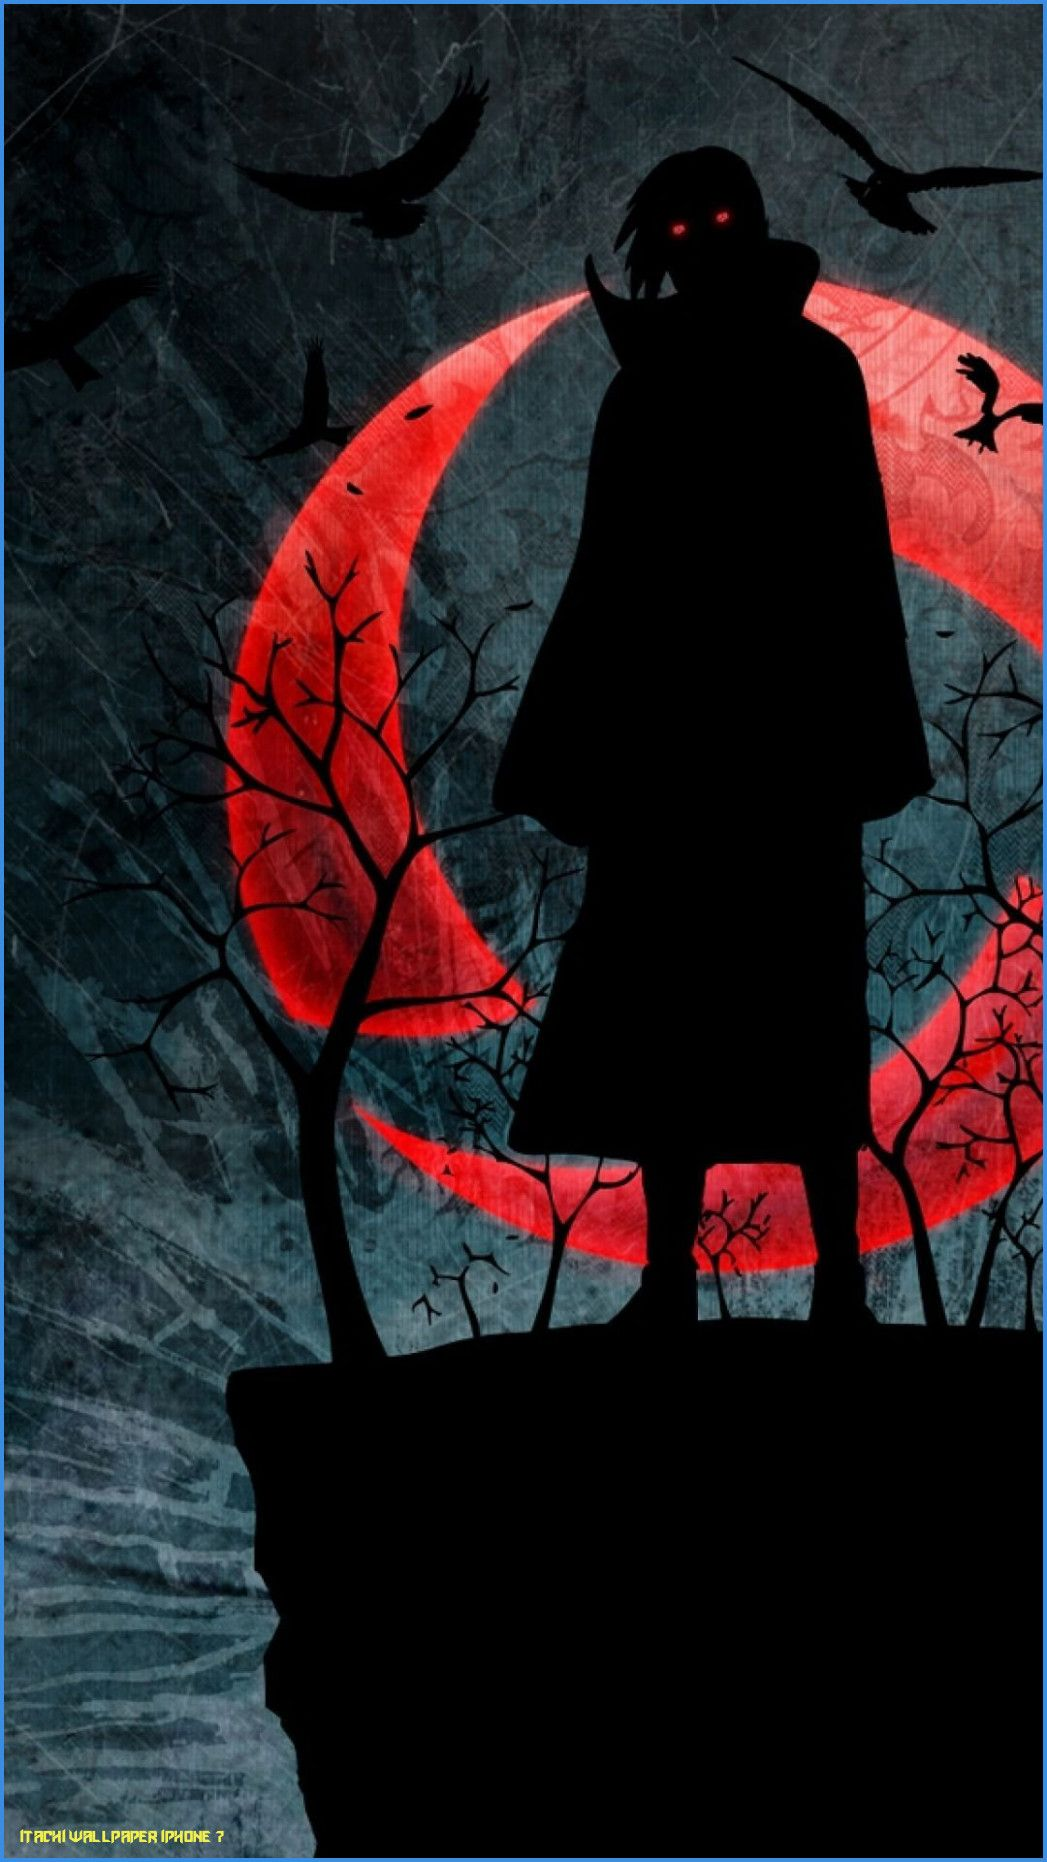 12 Things About Itachi Wallpaper Iphone 12 You Have To Experience It Yourself Itachi Wallpaper Iphone 12 Naruto Wallpaper Iphone Itachi Uchiha Uchiha